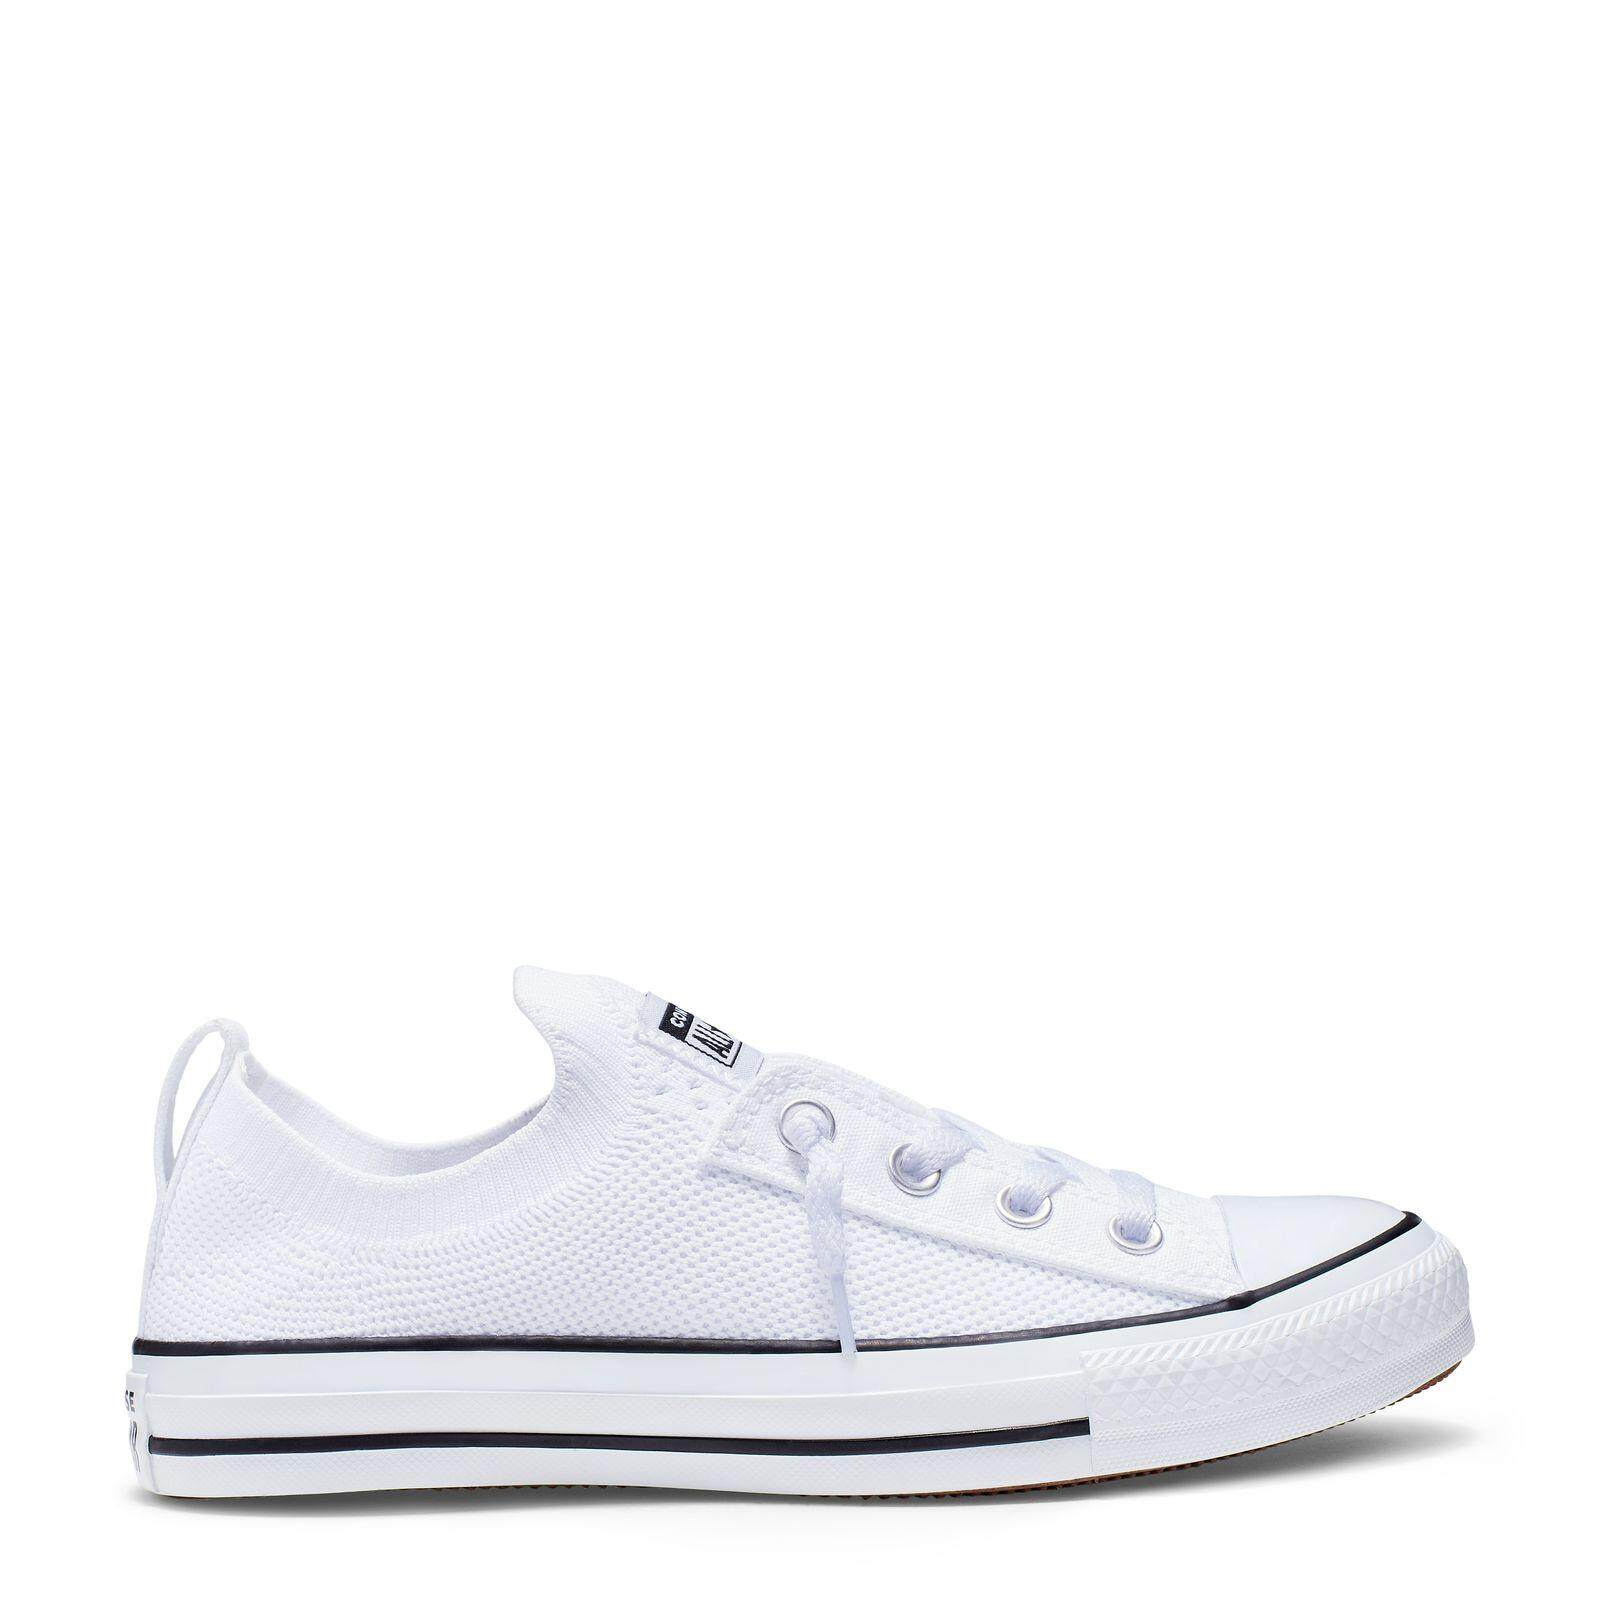 สอนใช้งาน  ขอนแก่น CONVERSE CHUCK TAYLOR ALL STAR SHORELINE KNIT - SLIP - WHITE/BLACK/WHITE - WOMEN - 565490C - 565490CF9WW